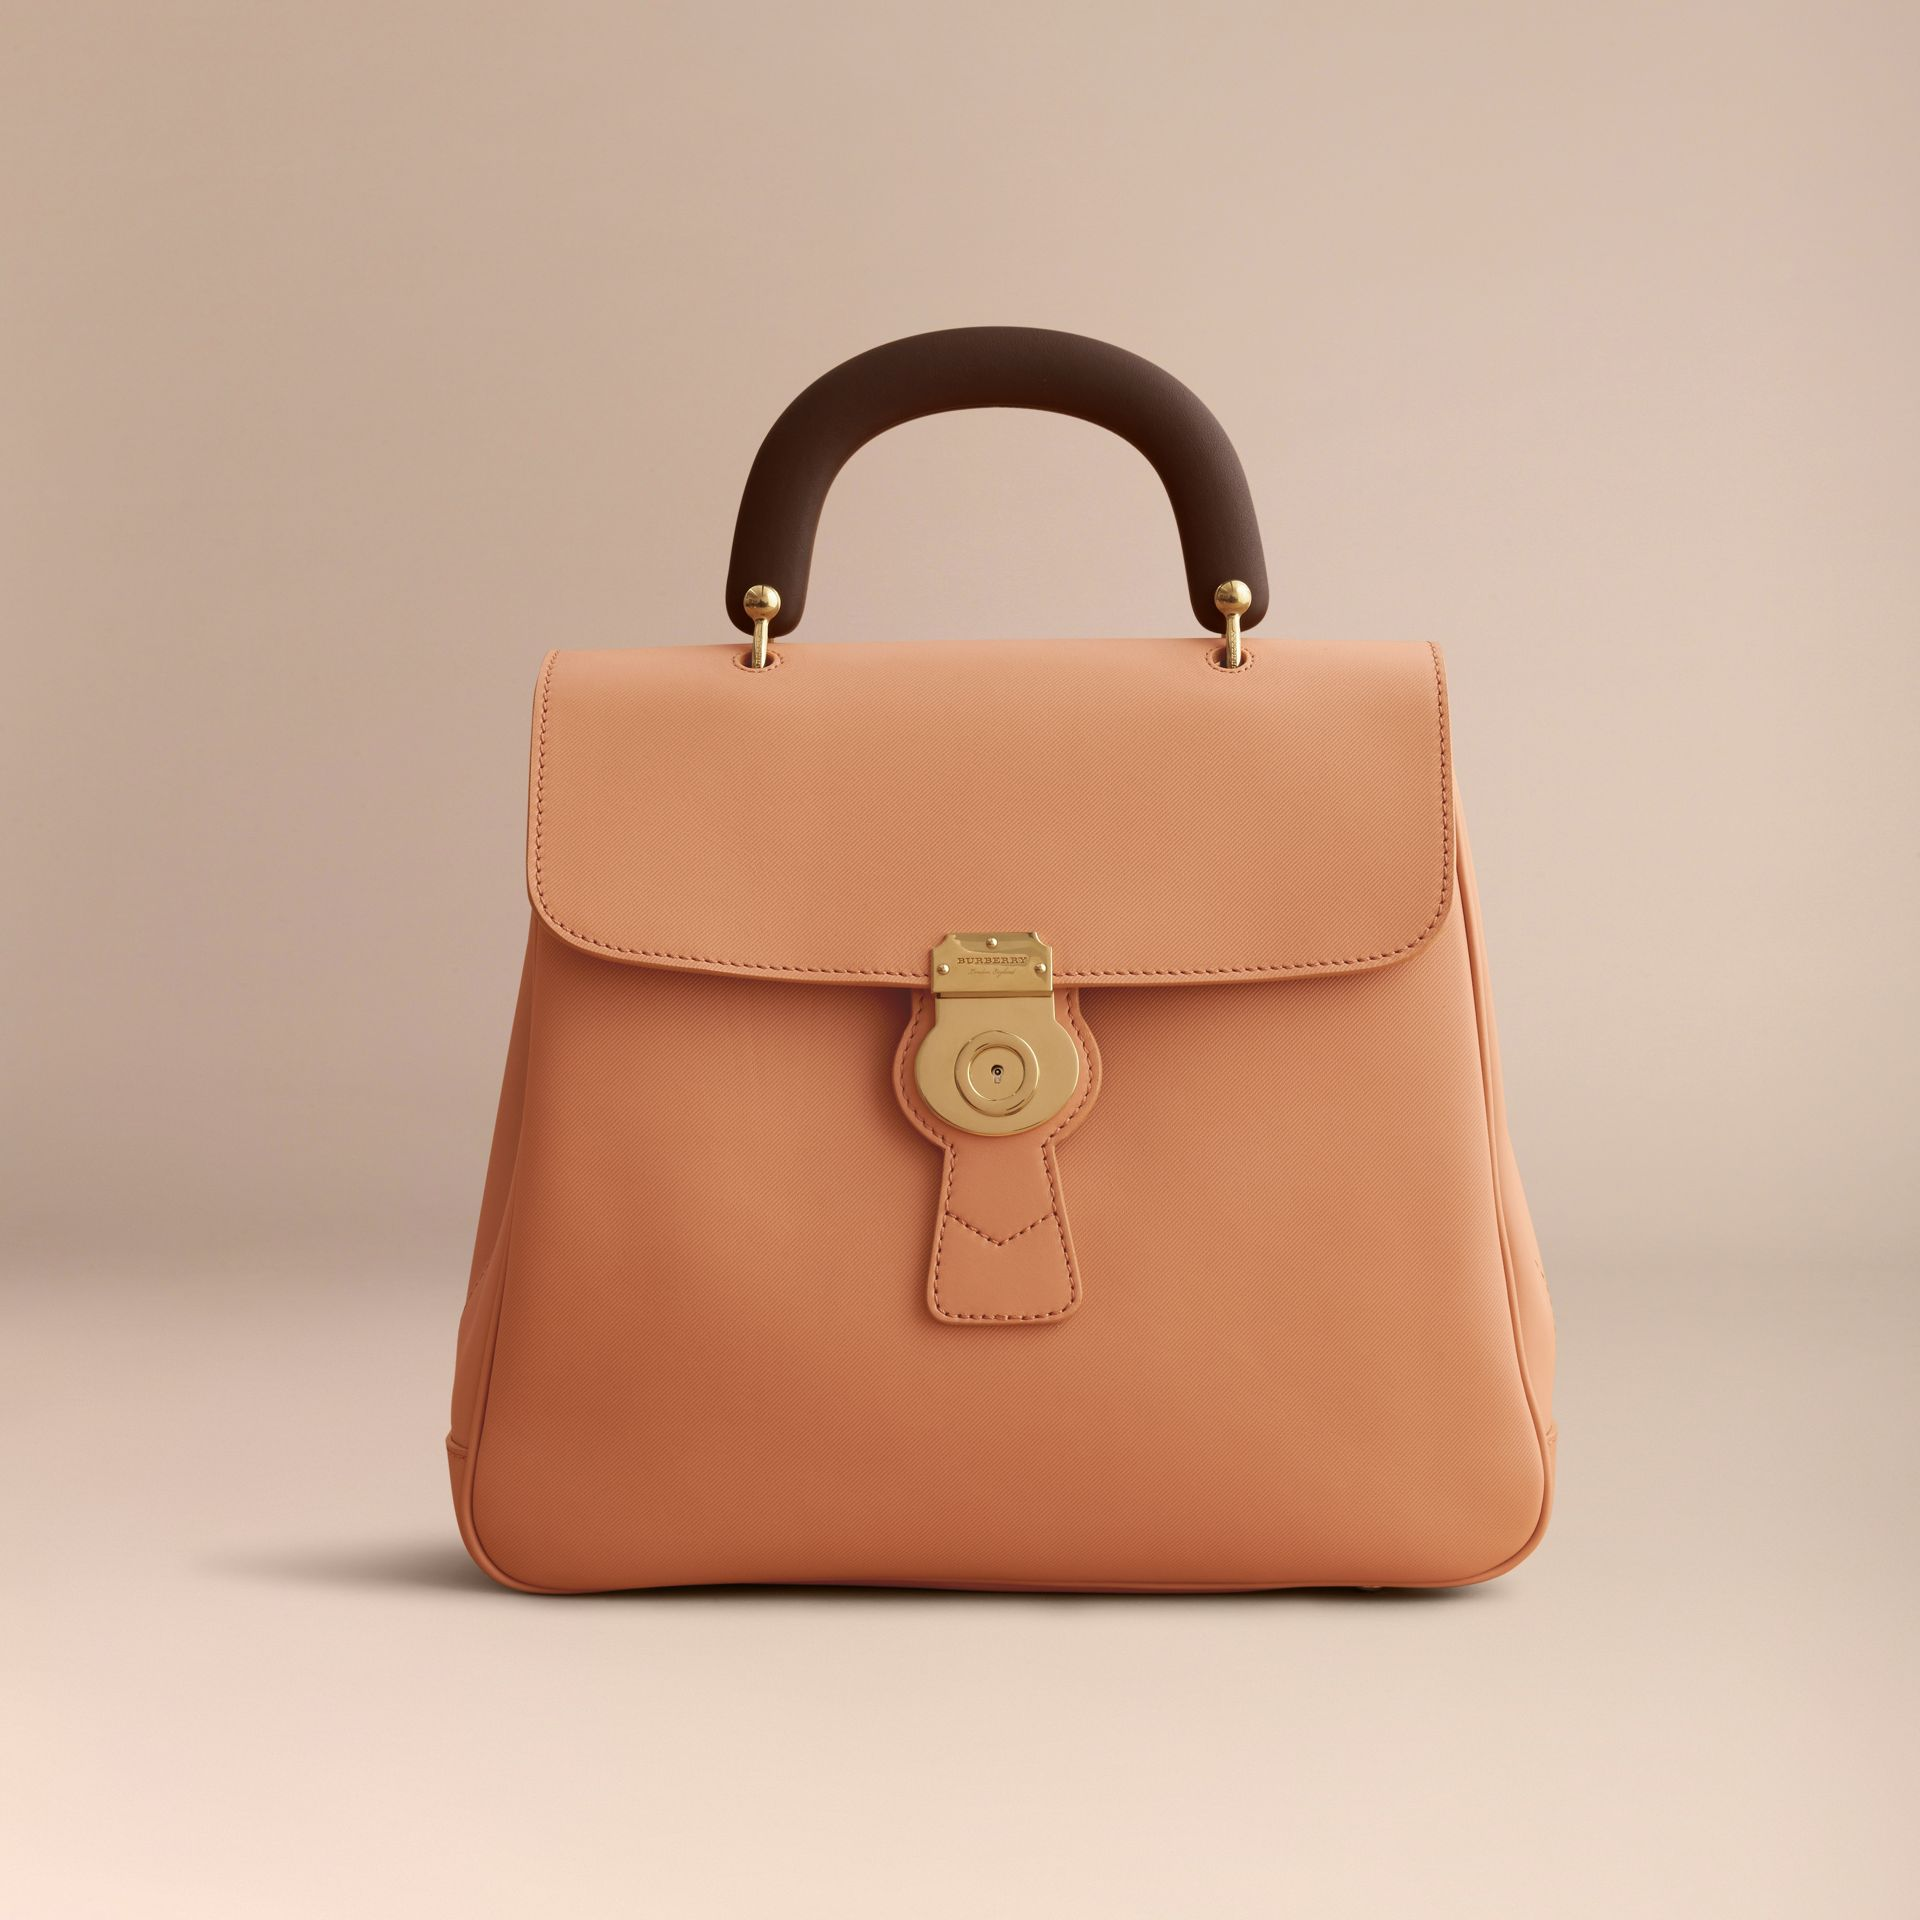 The Large DK88 Top Handle Bag in Pale Clementine - Women | Burberry - gallery image 7